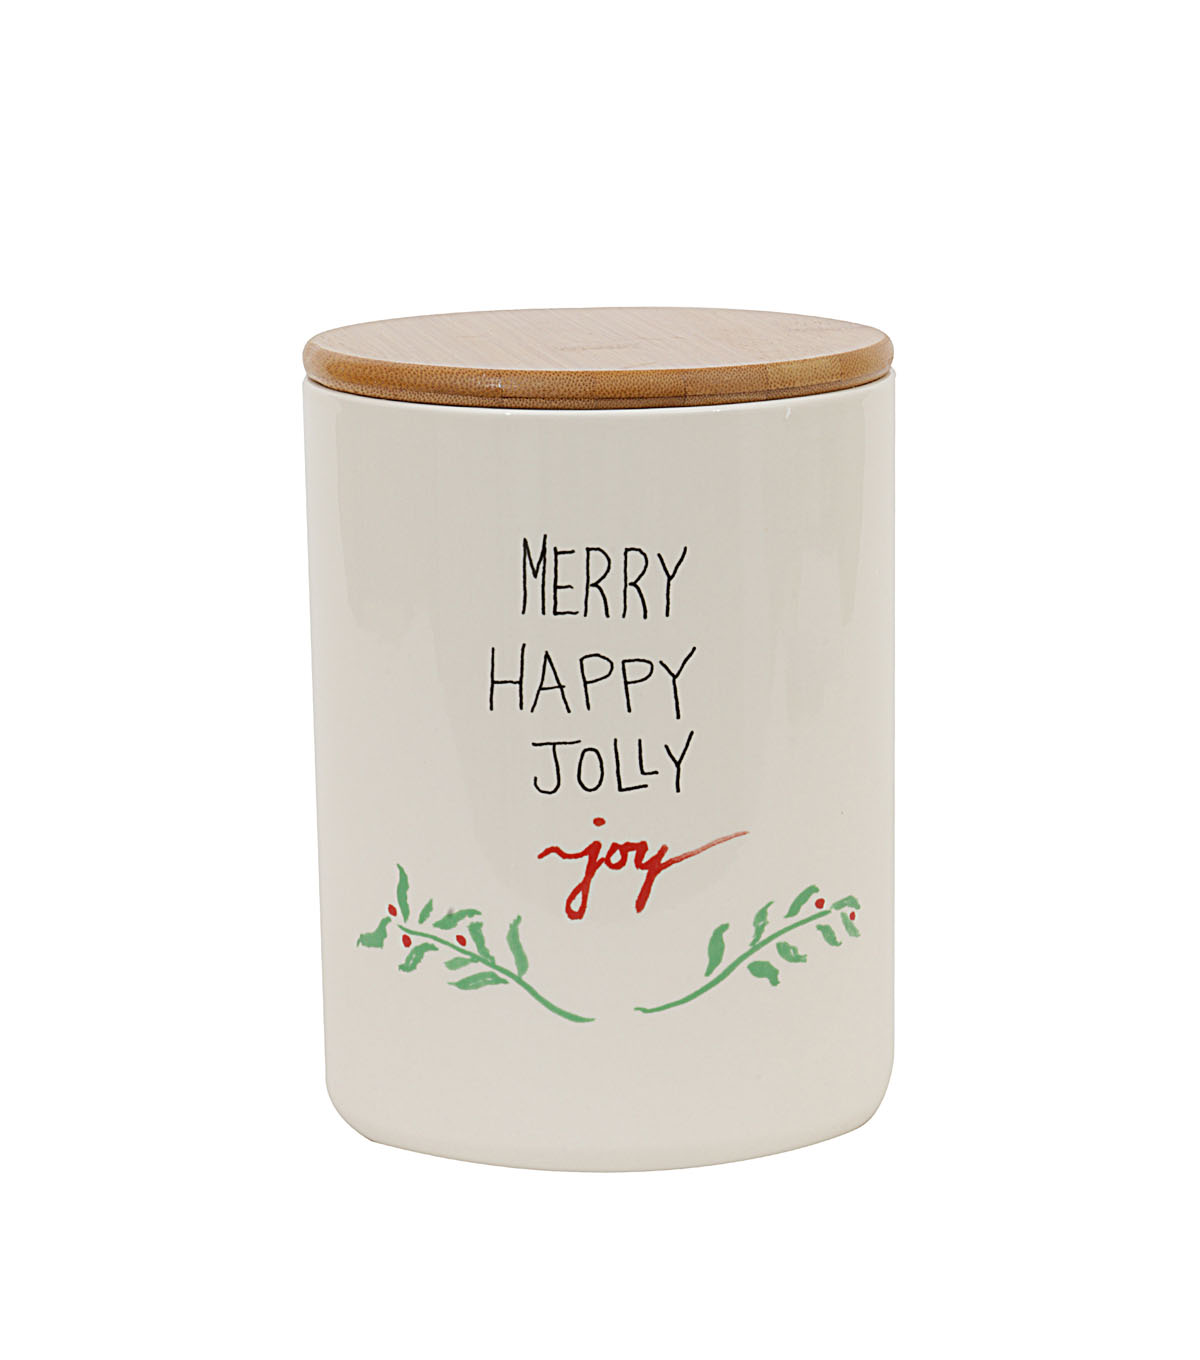 3R Studios Ceramic Jar with Bamboo Lid-Merry, Happy, Jolly & Joy